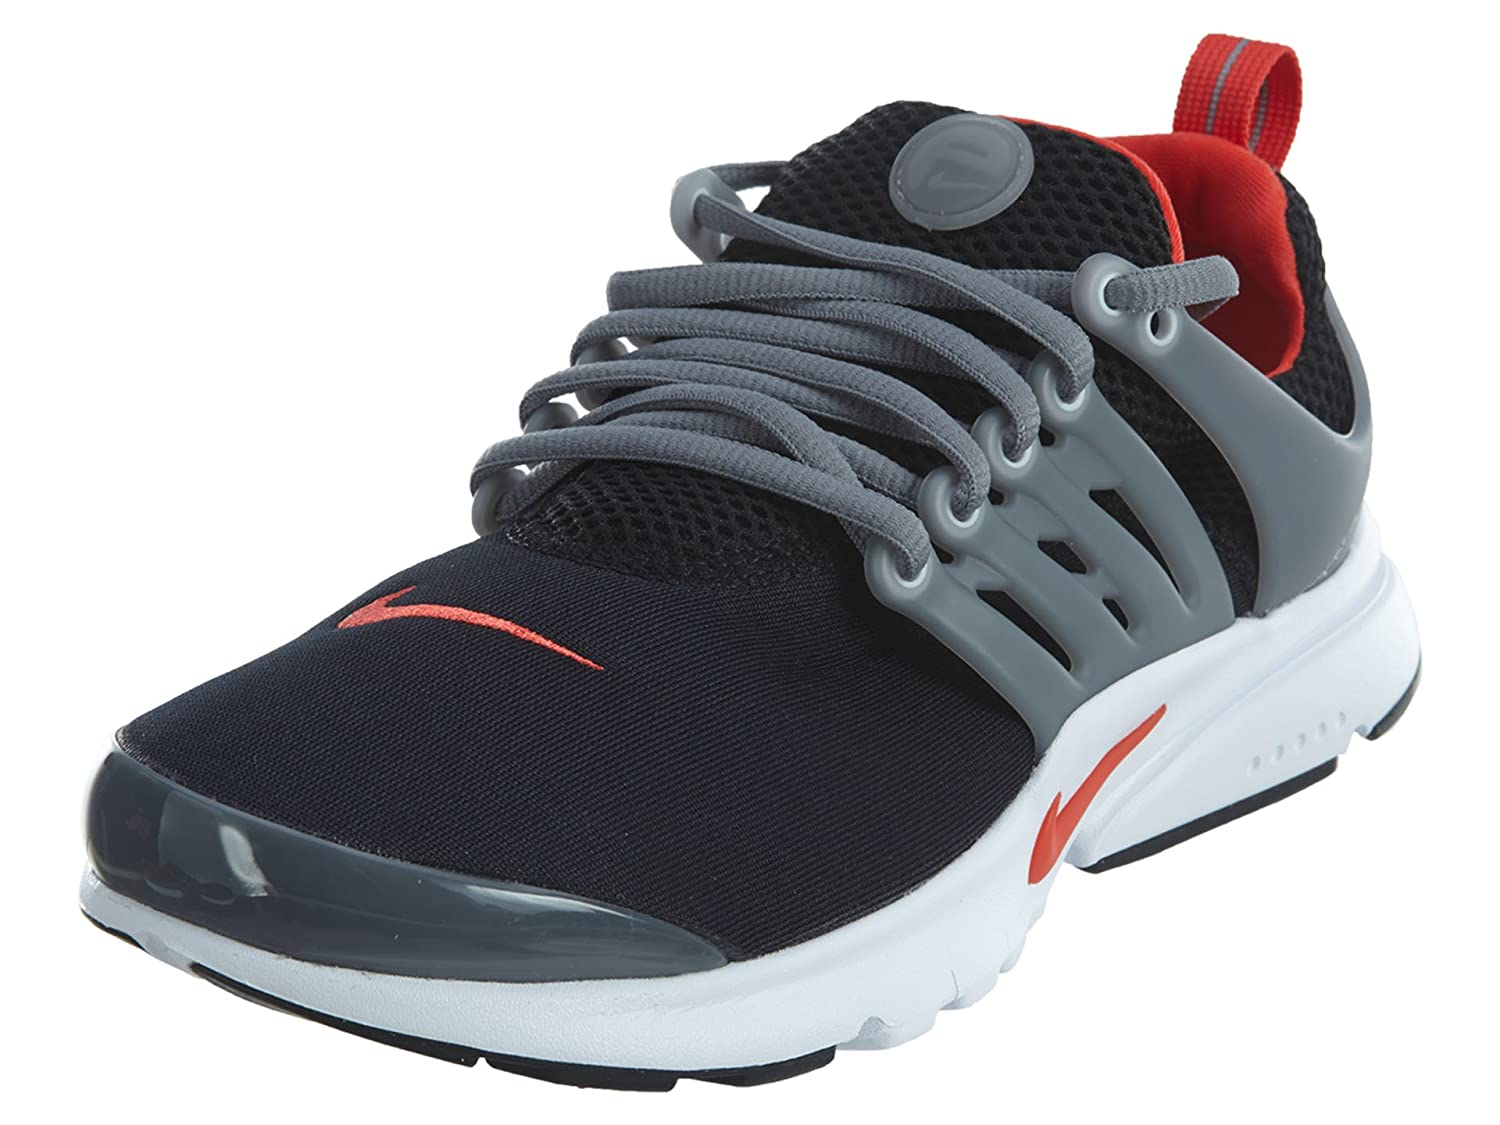 Nike Air Presto Youth  Traing Shoes B006ODRA8W 6 M US Big Kid|Black/Max Orange/Cool Grey